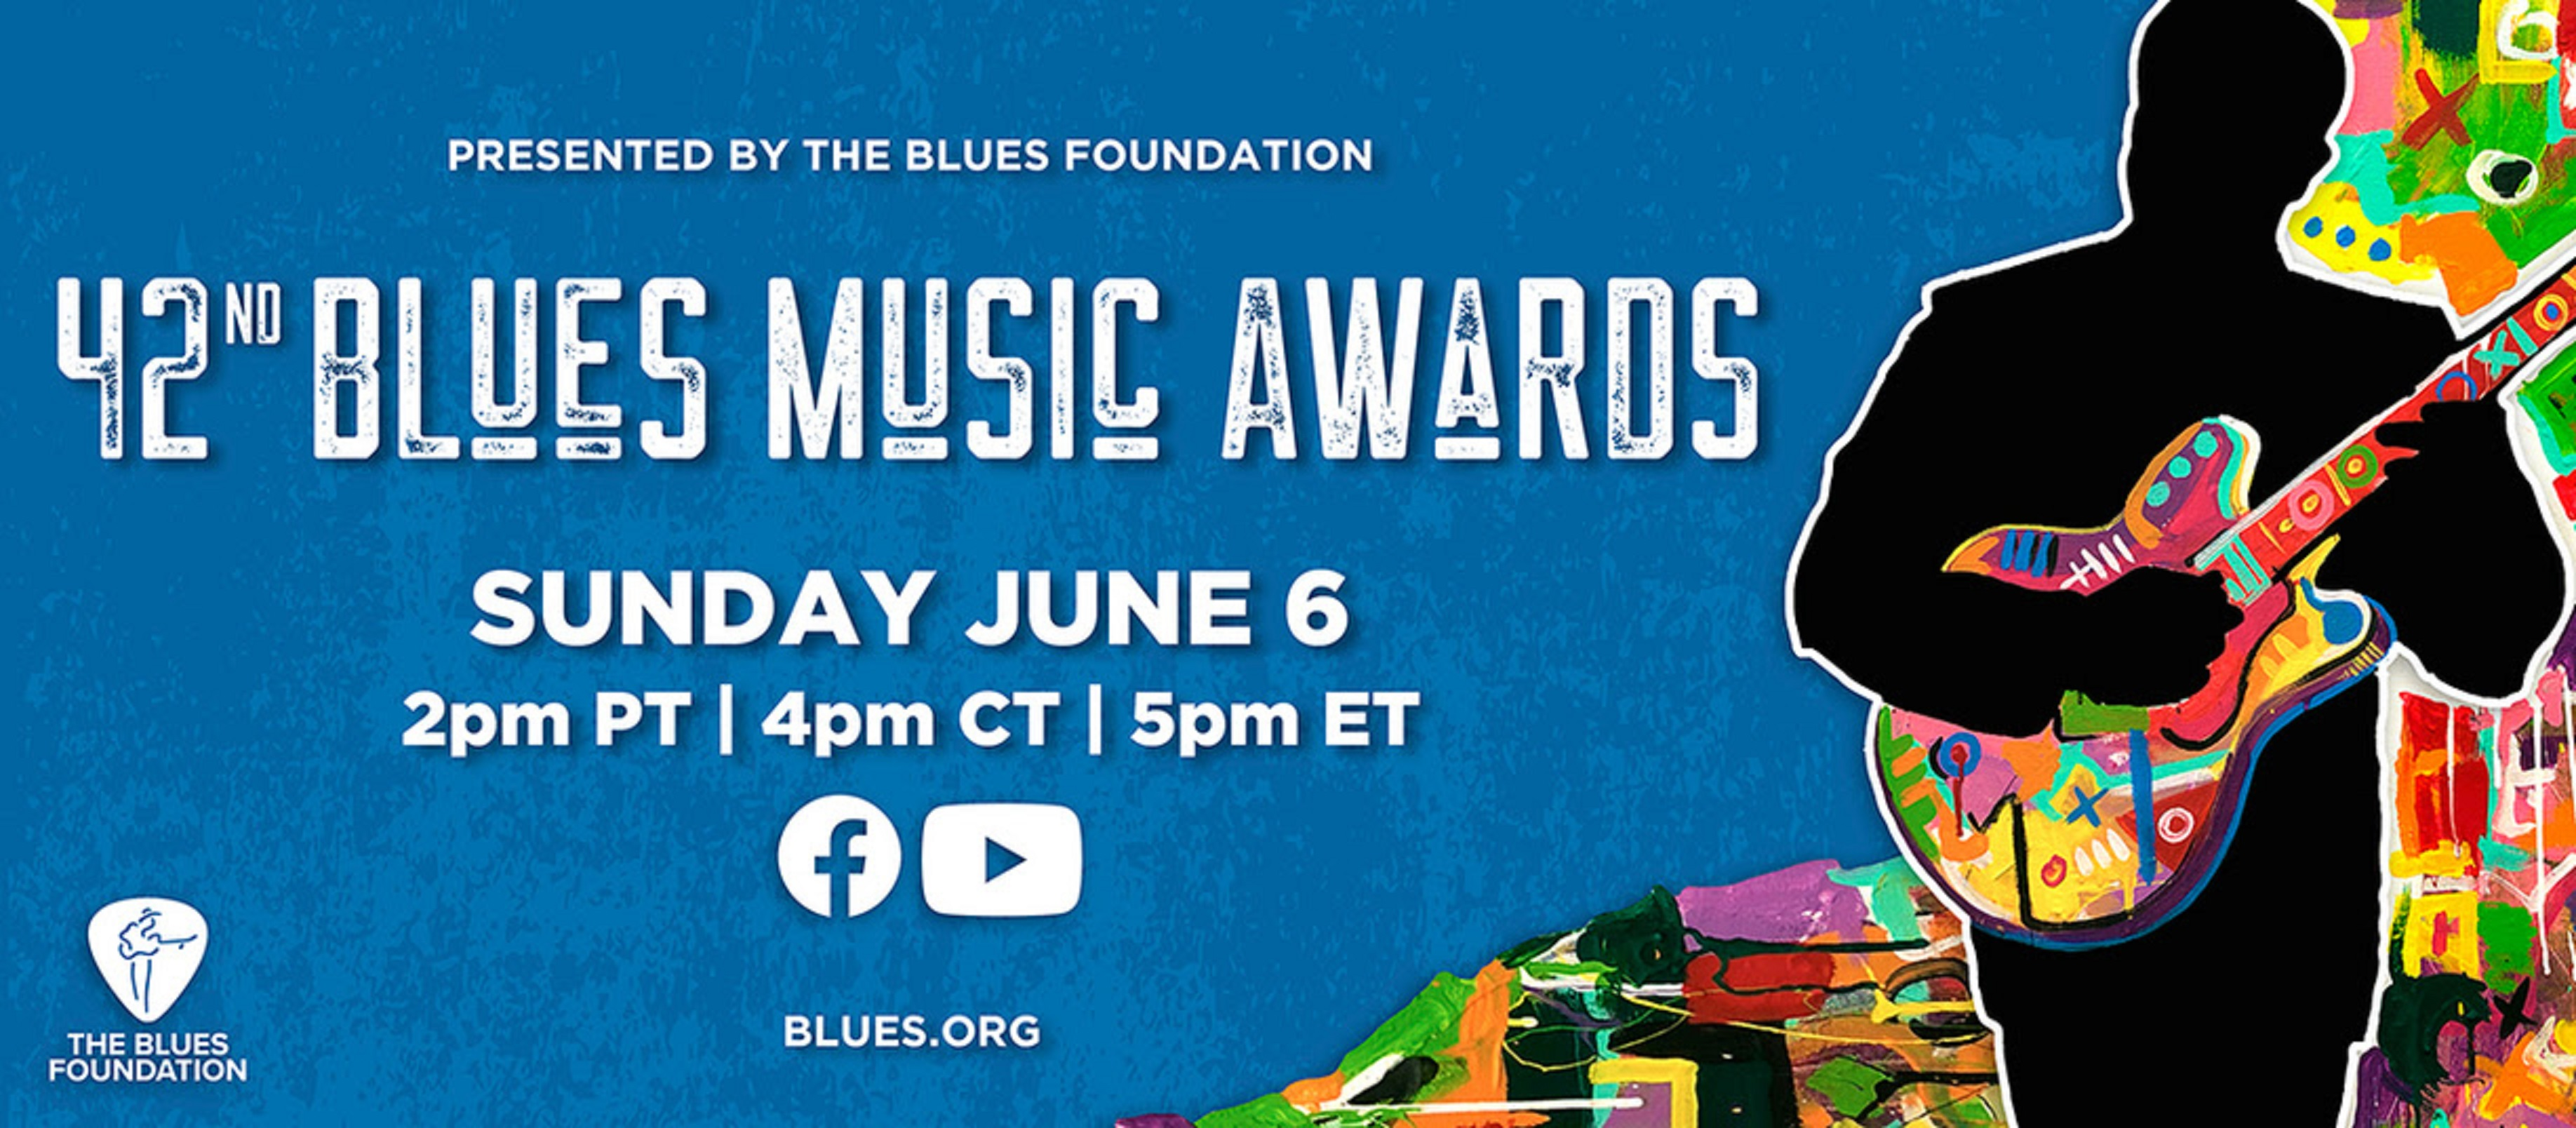 Blues Music Awards nominees announced; virtual celebration to take place June 6, 2021